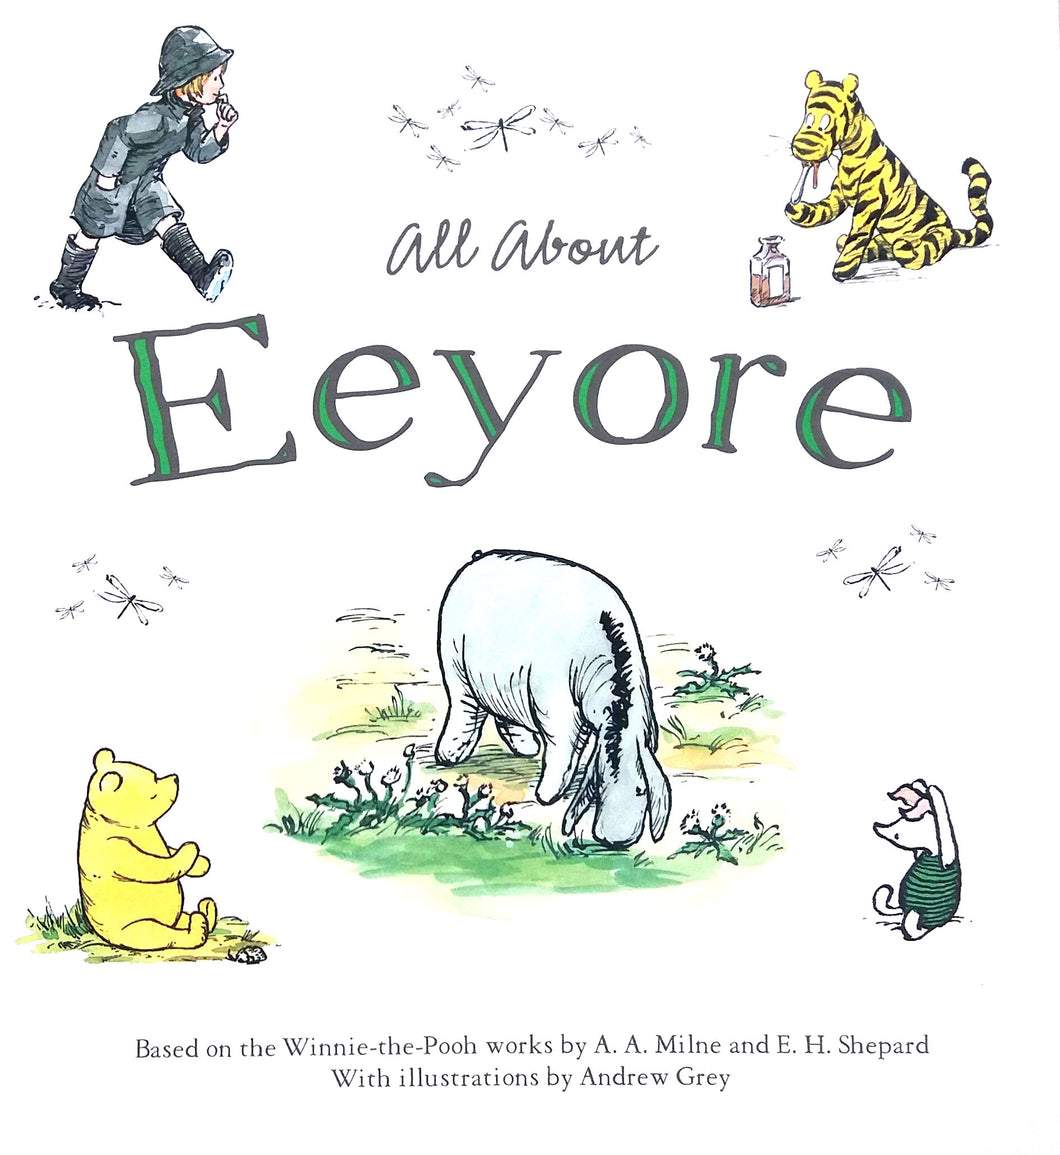 WPB 02 - All about Eeyore